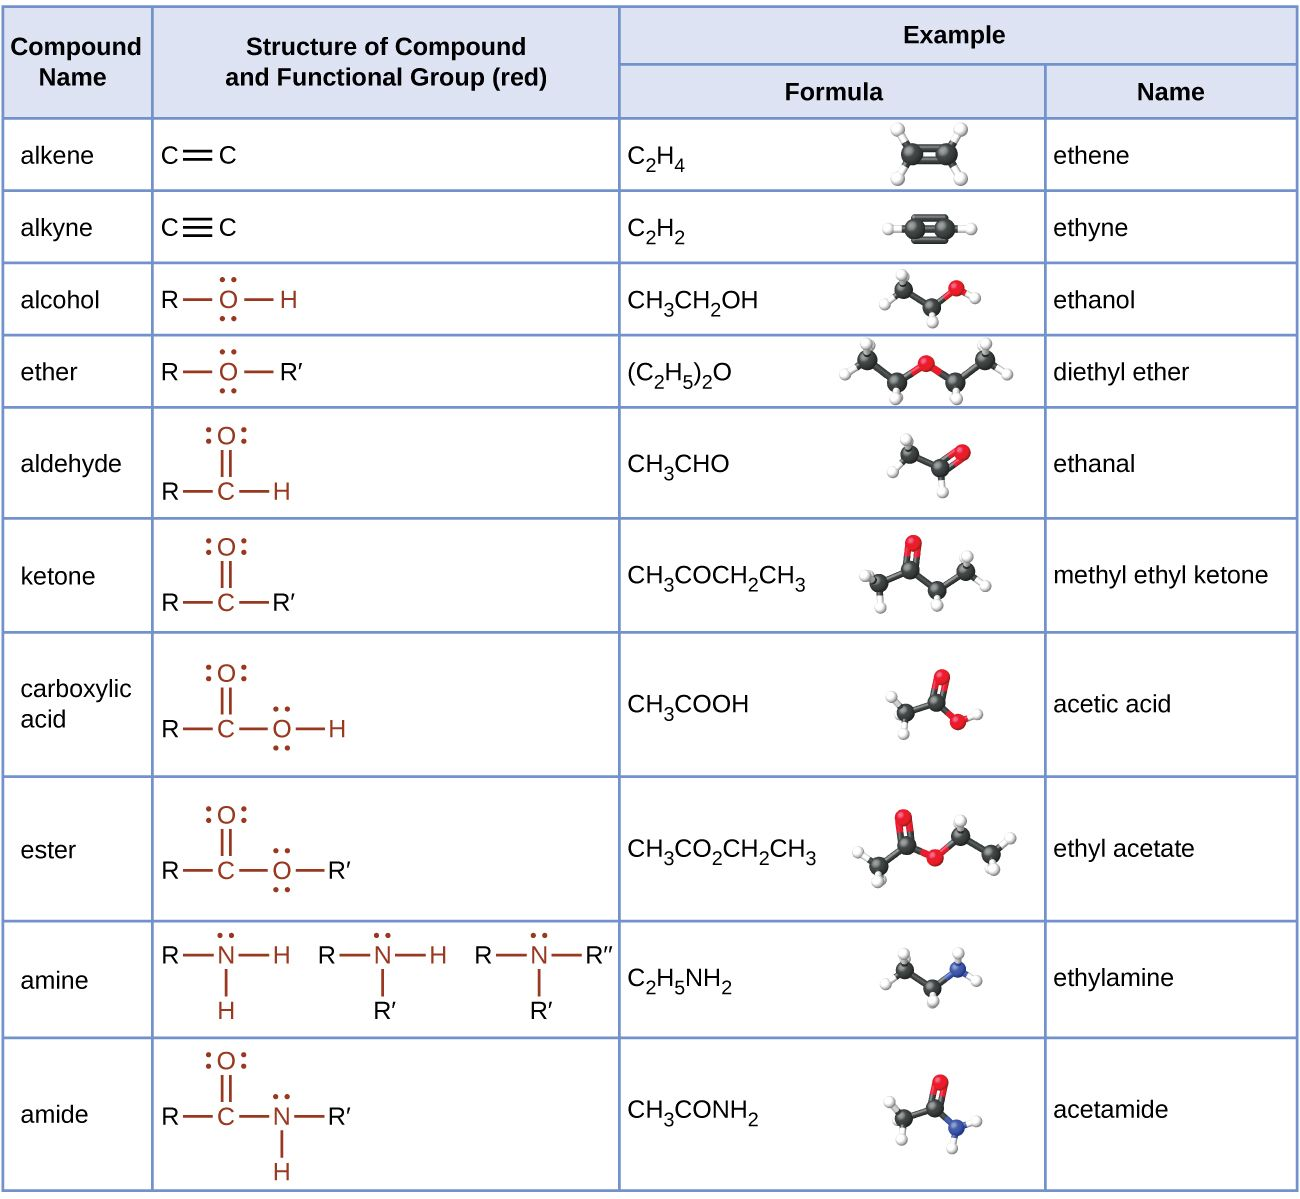 This Table Provides Compound Names Structures With Functional Groups In Red And Examples That